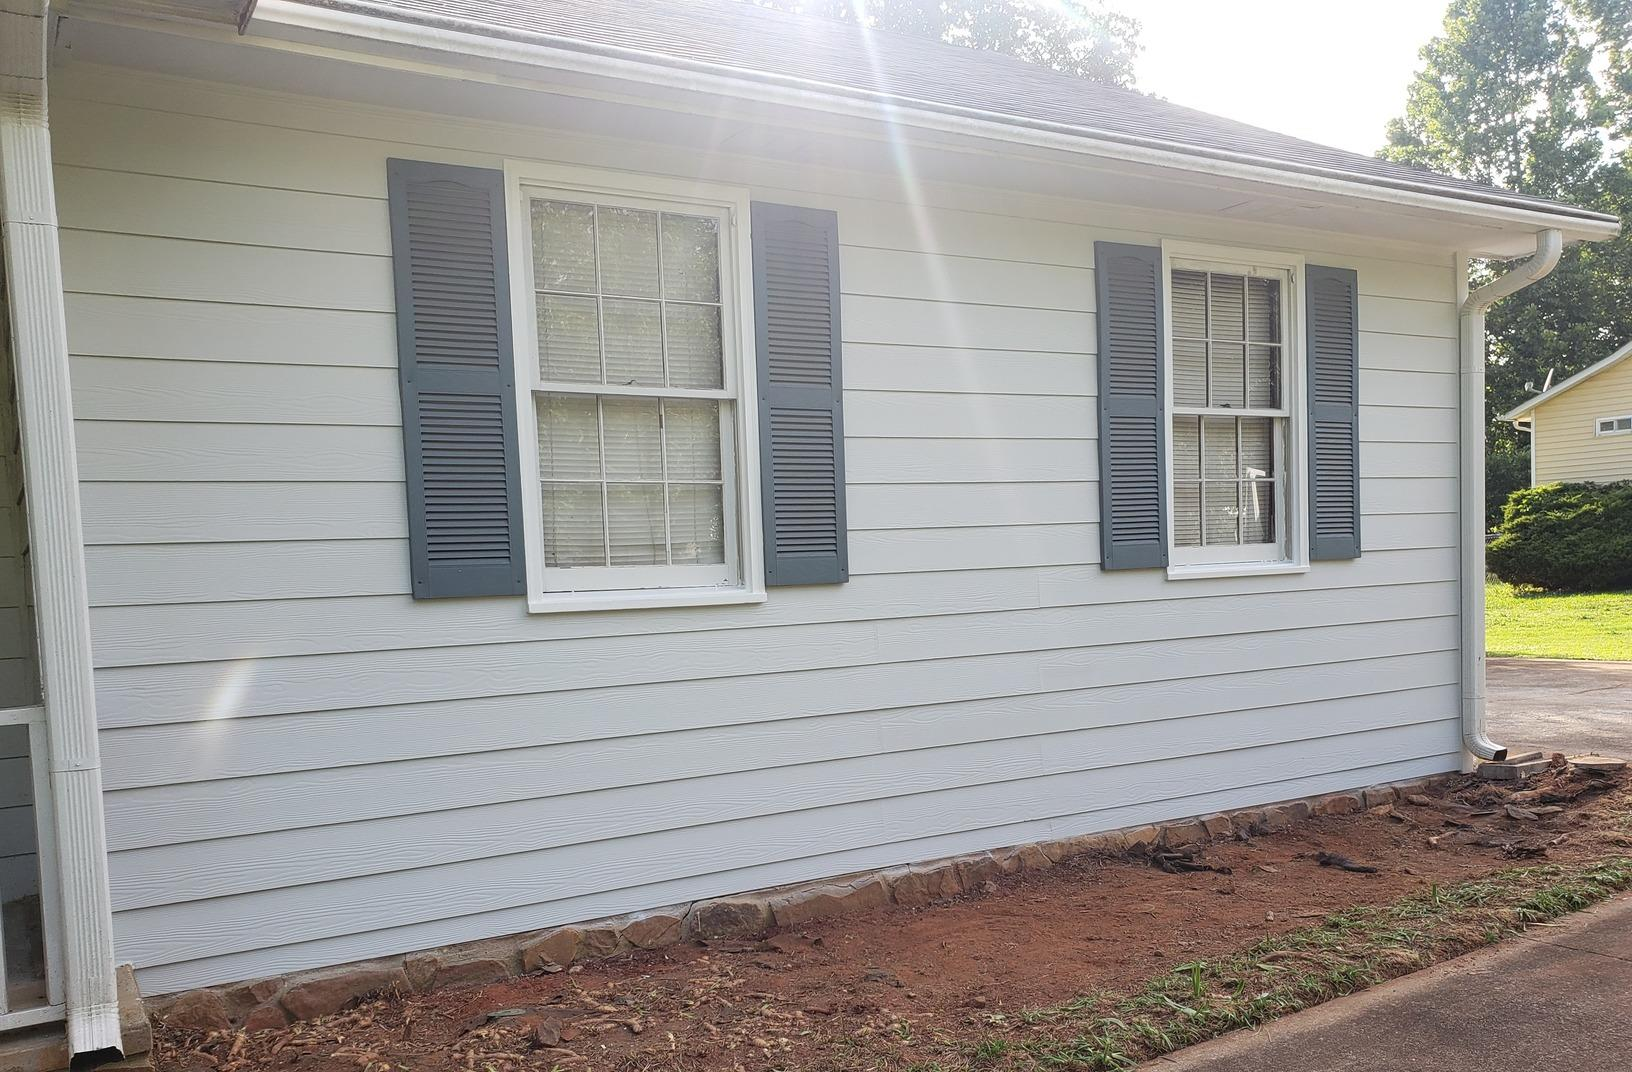 Siding replacement in Hampton, GA - After Photo